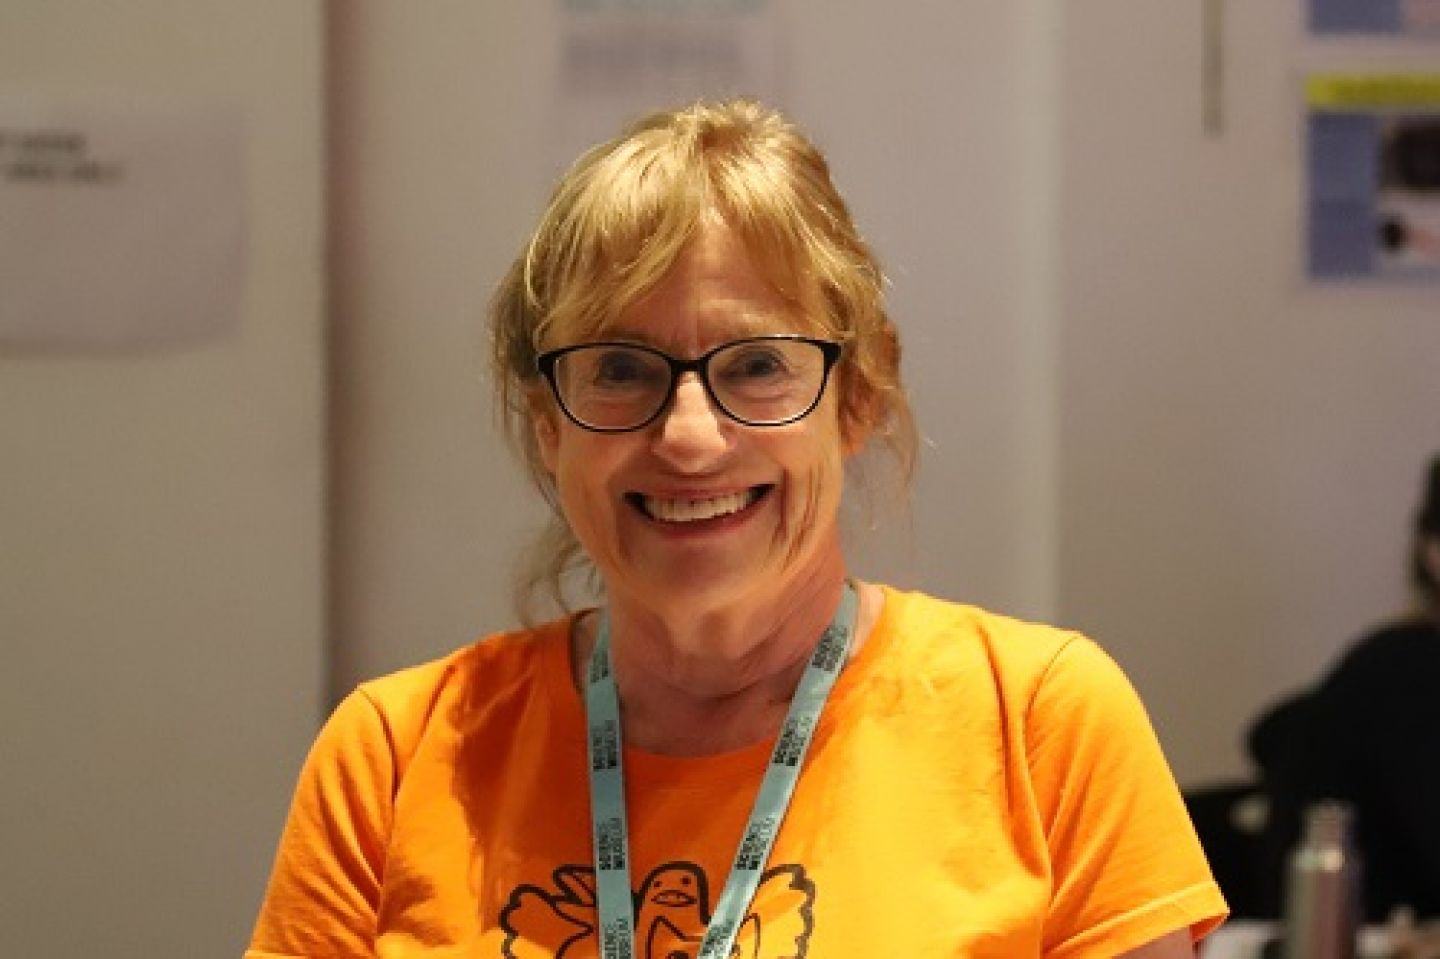 Dr Brenda Todd, Senior Lecturer at the Department of Psychology